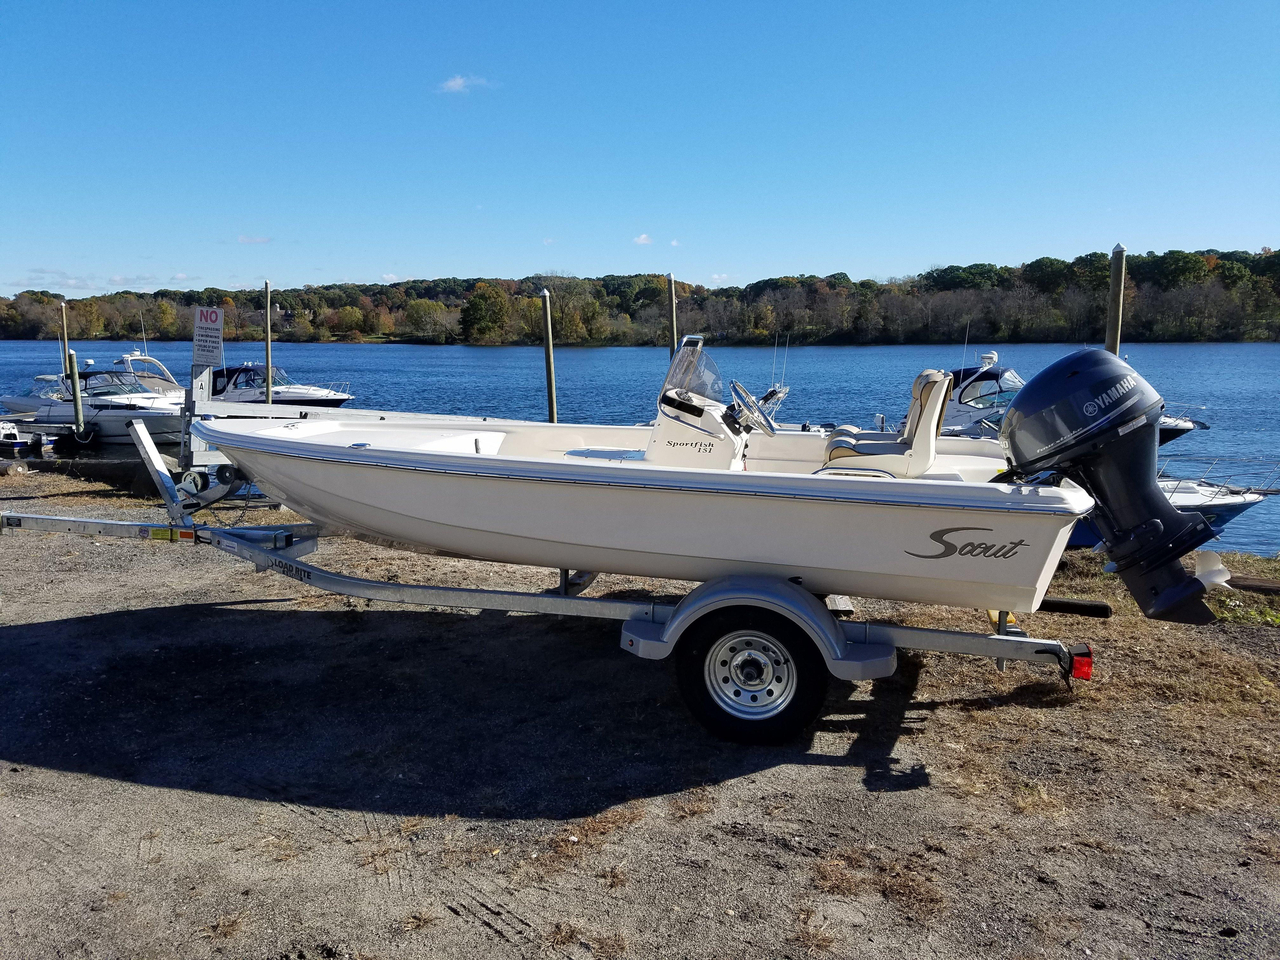 2017 New Scout Boats Sport Fish Center Console Fishing Boat For Sale - $15,995 - Shelton, CT ...